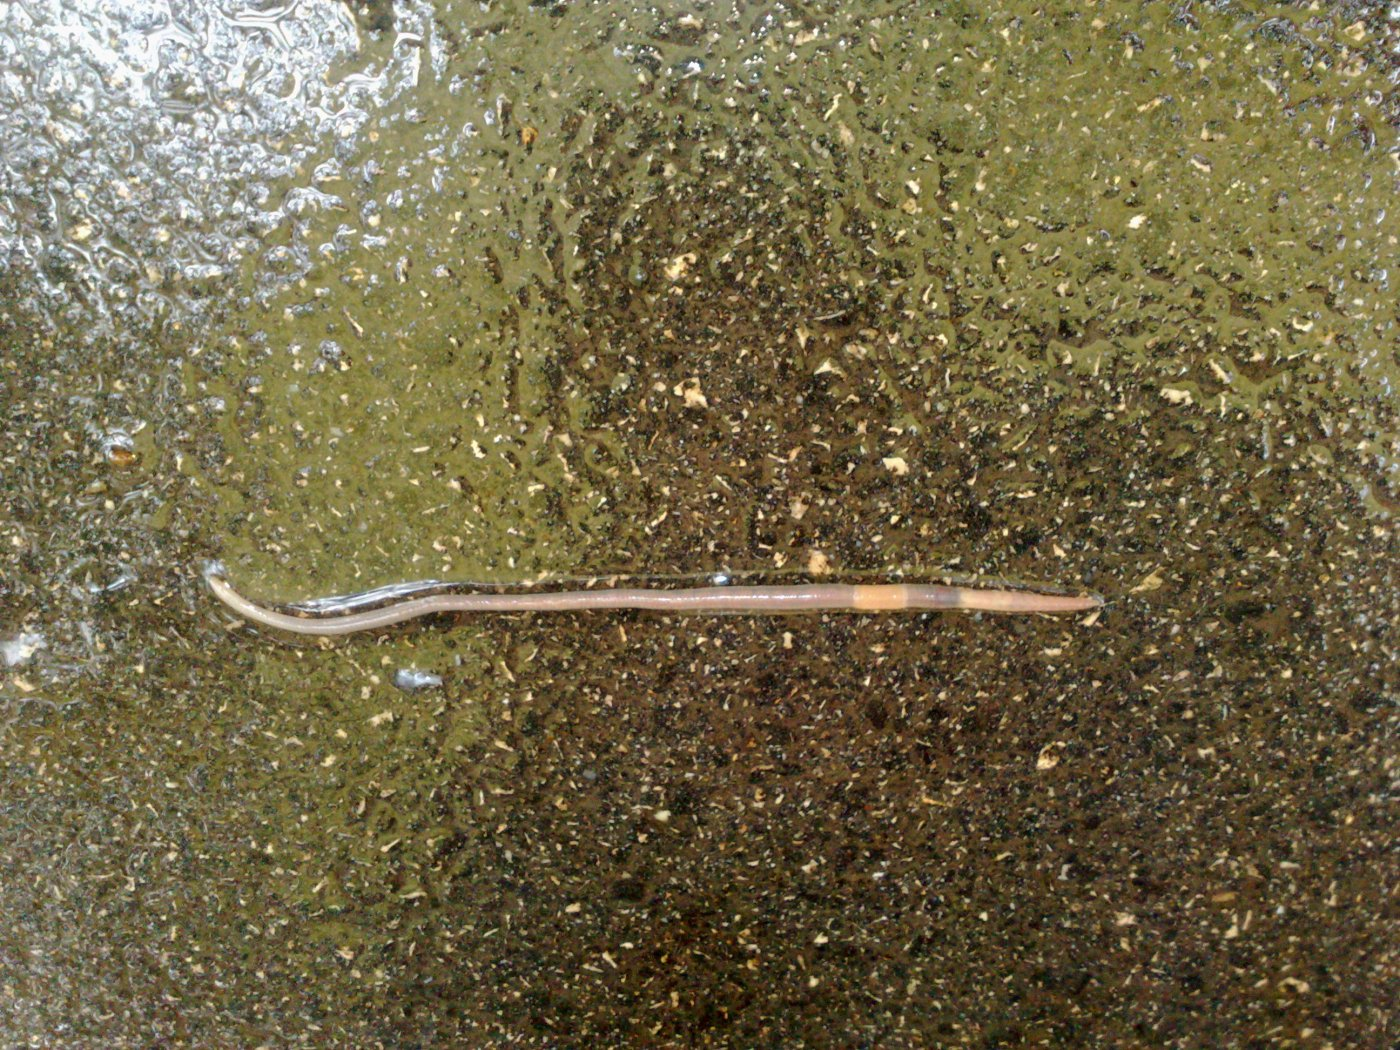 Earthworm after the rain - 1